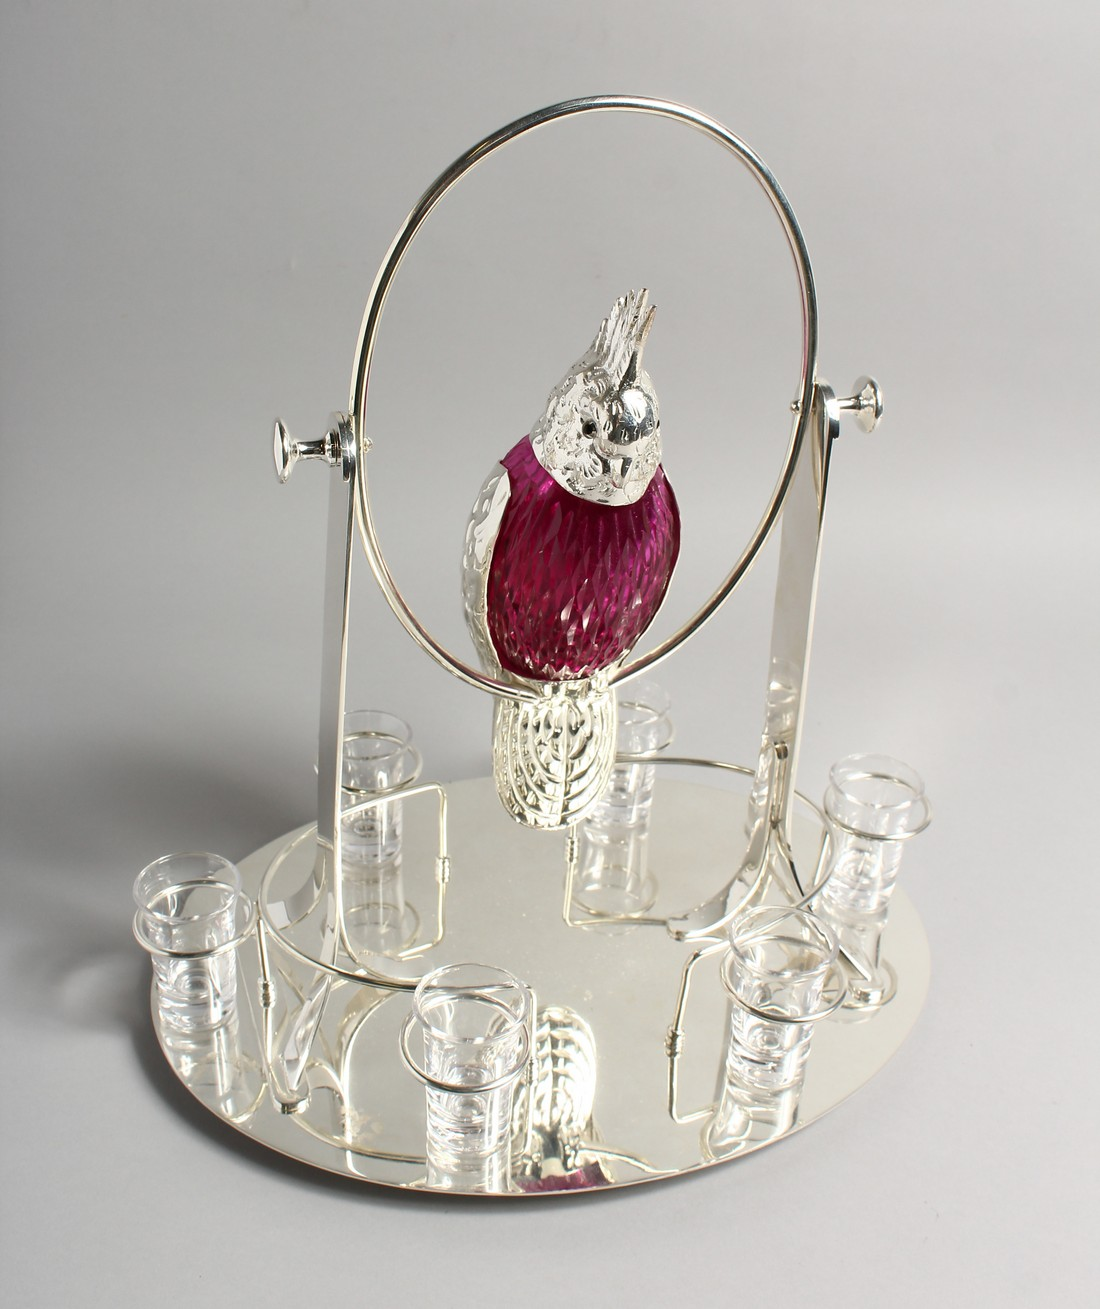 AN UNUSUAL LIQUEUR SET, the decanter modelled as a parrot on a swing, with six shot glasses to the